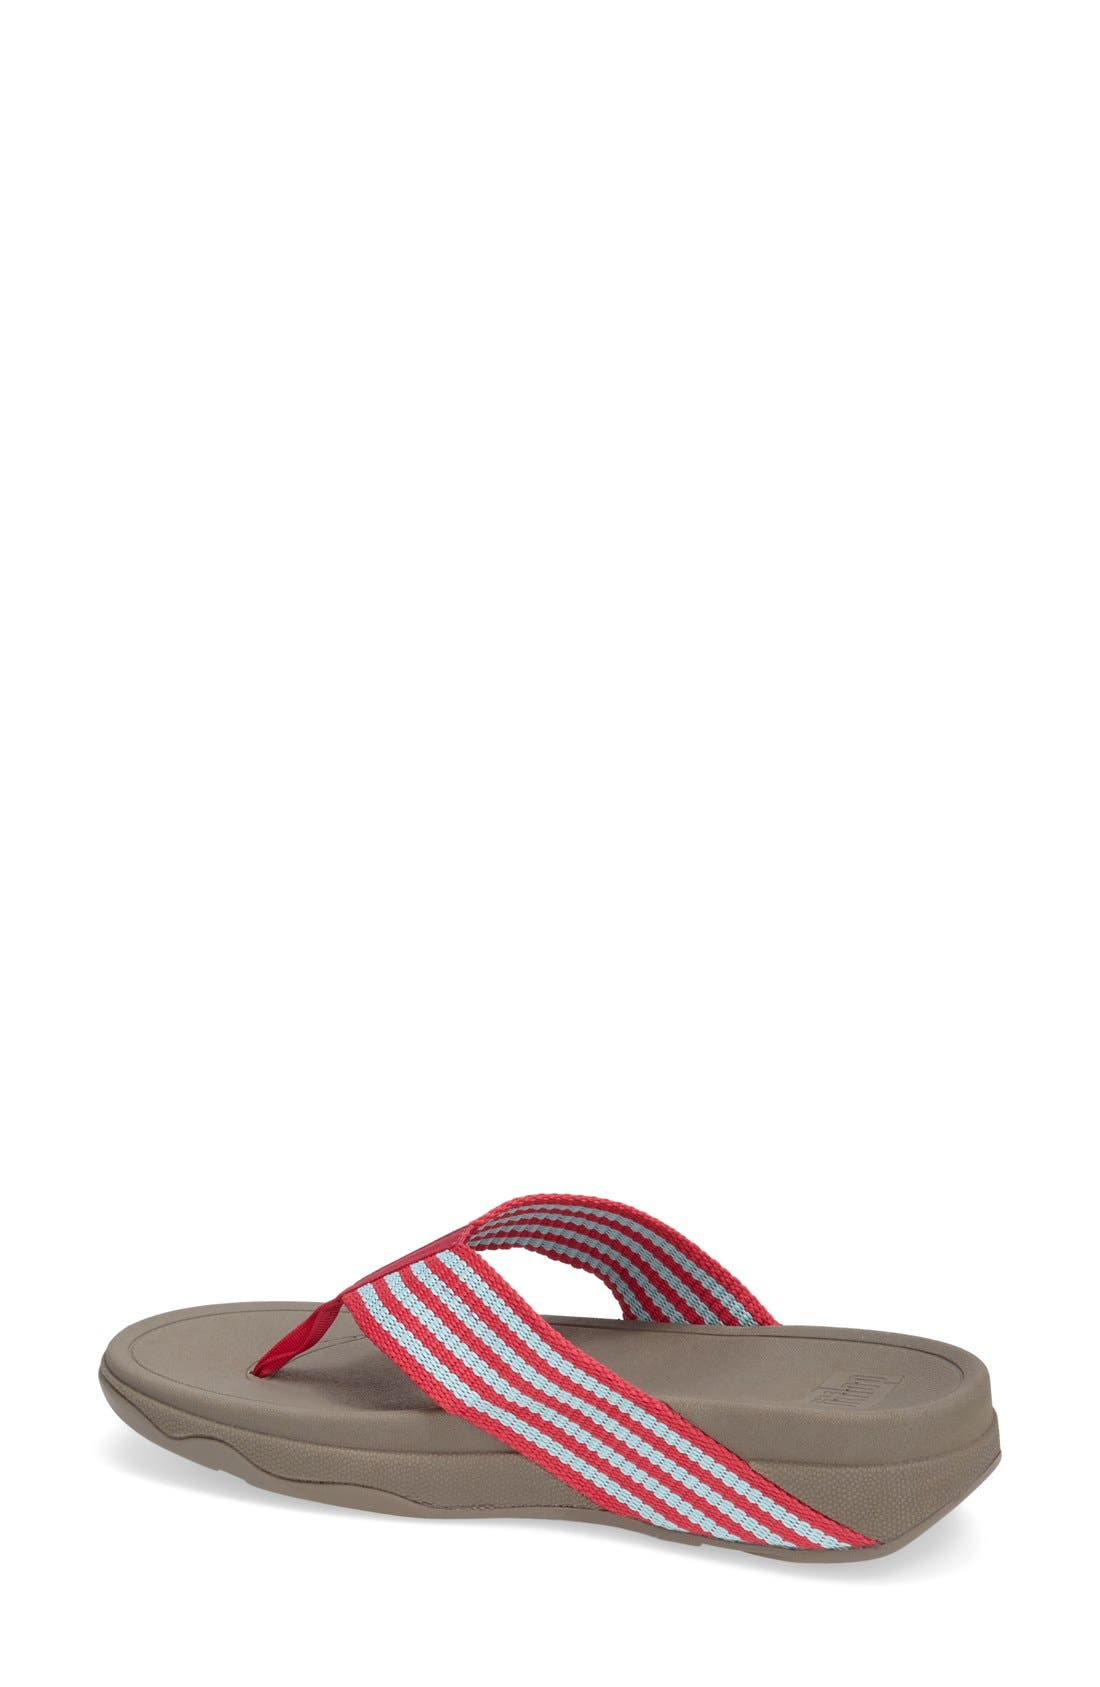 'Surfa' Thong Sandal,                             Alternate thumbnail 17, color,